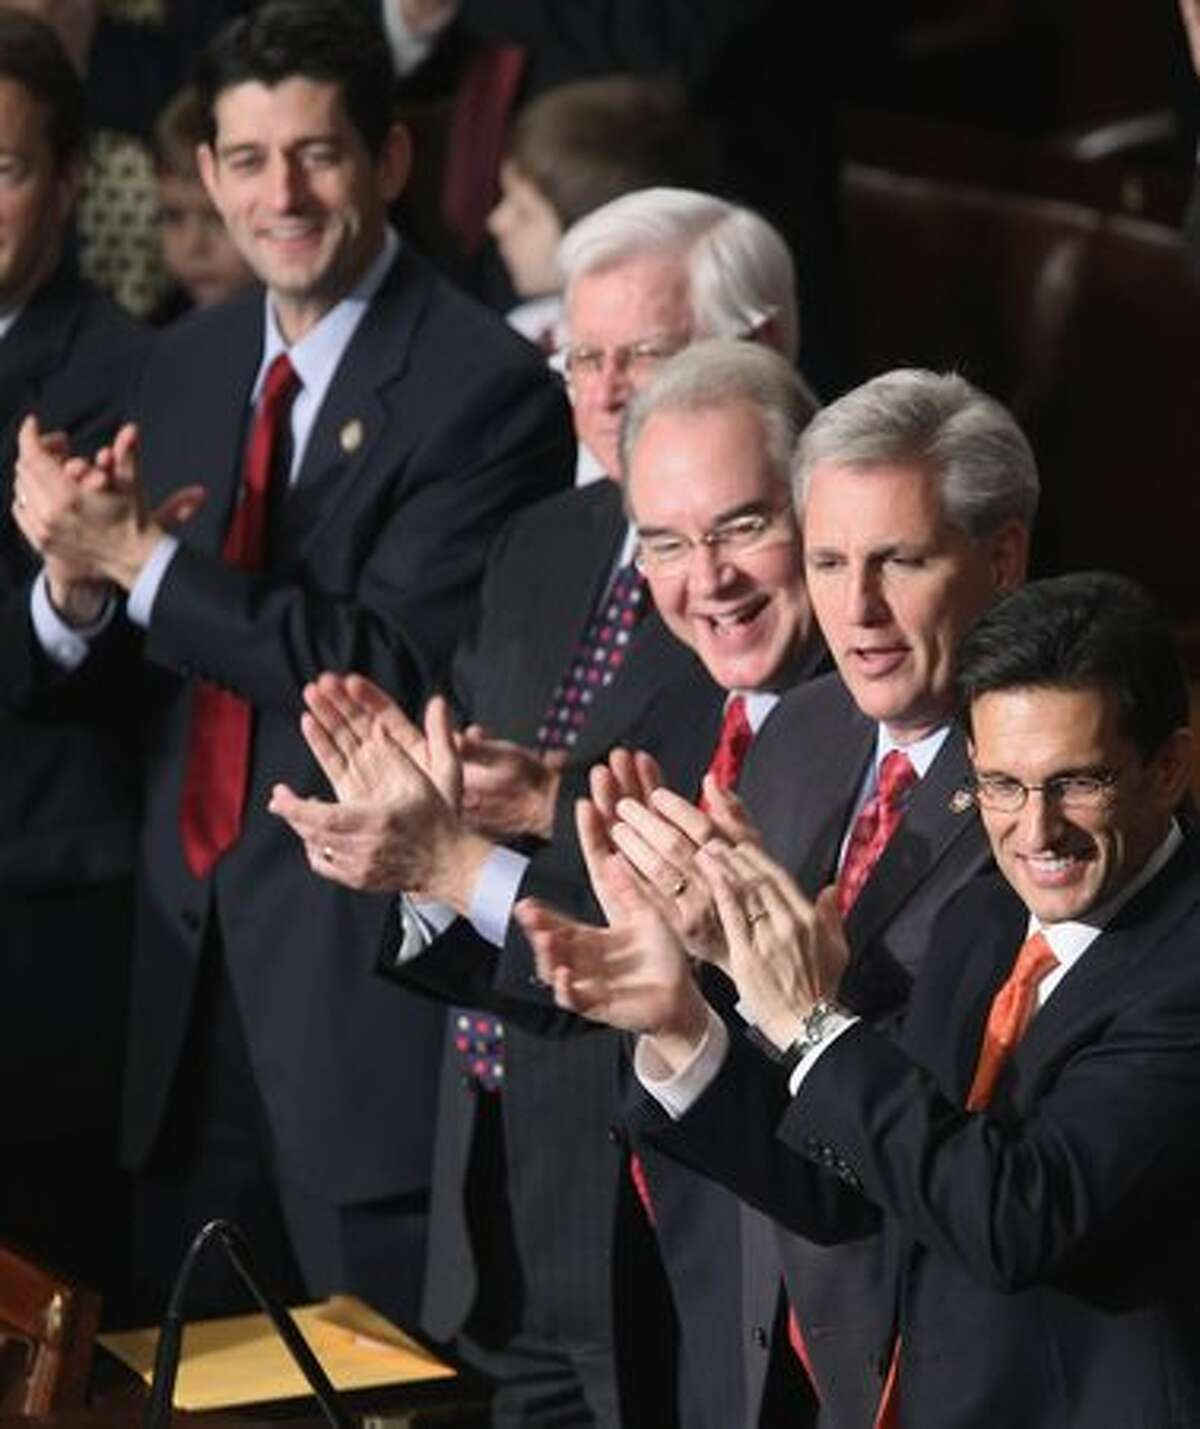 WASHINGTON, DC - House Majority Leader-designate Rep. Eric Cantor (R-VA) (R) and majority whip-designate Rep. Kevin McCarthy (R-CA) (2nd R) applaud during roll call votes on the election of the next Speaker of the House Wednesday in Washington, DC. The 112th U.S. Congress will be sworn-in today, with Republican legislators taking control of the House of Representatives and expected to begin attempts to dismantle portions of U.S. President Barack Obama's legislative agenda. (Photo by Alex Wong/Getty Images)